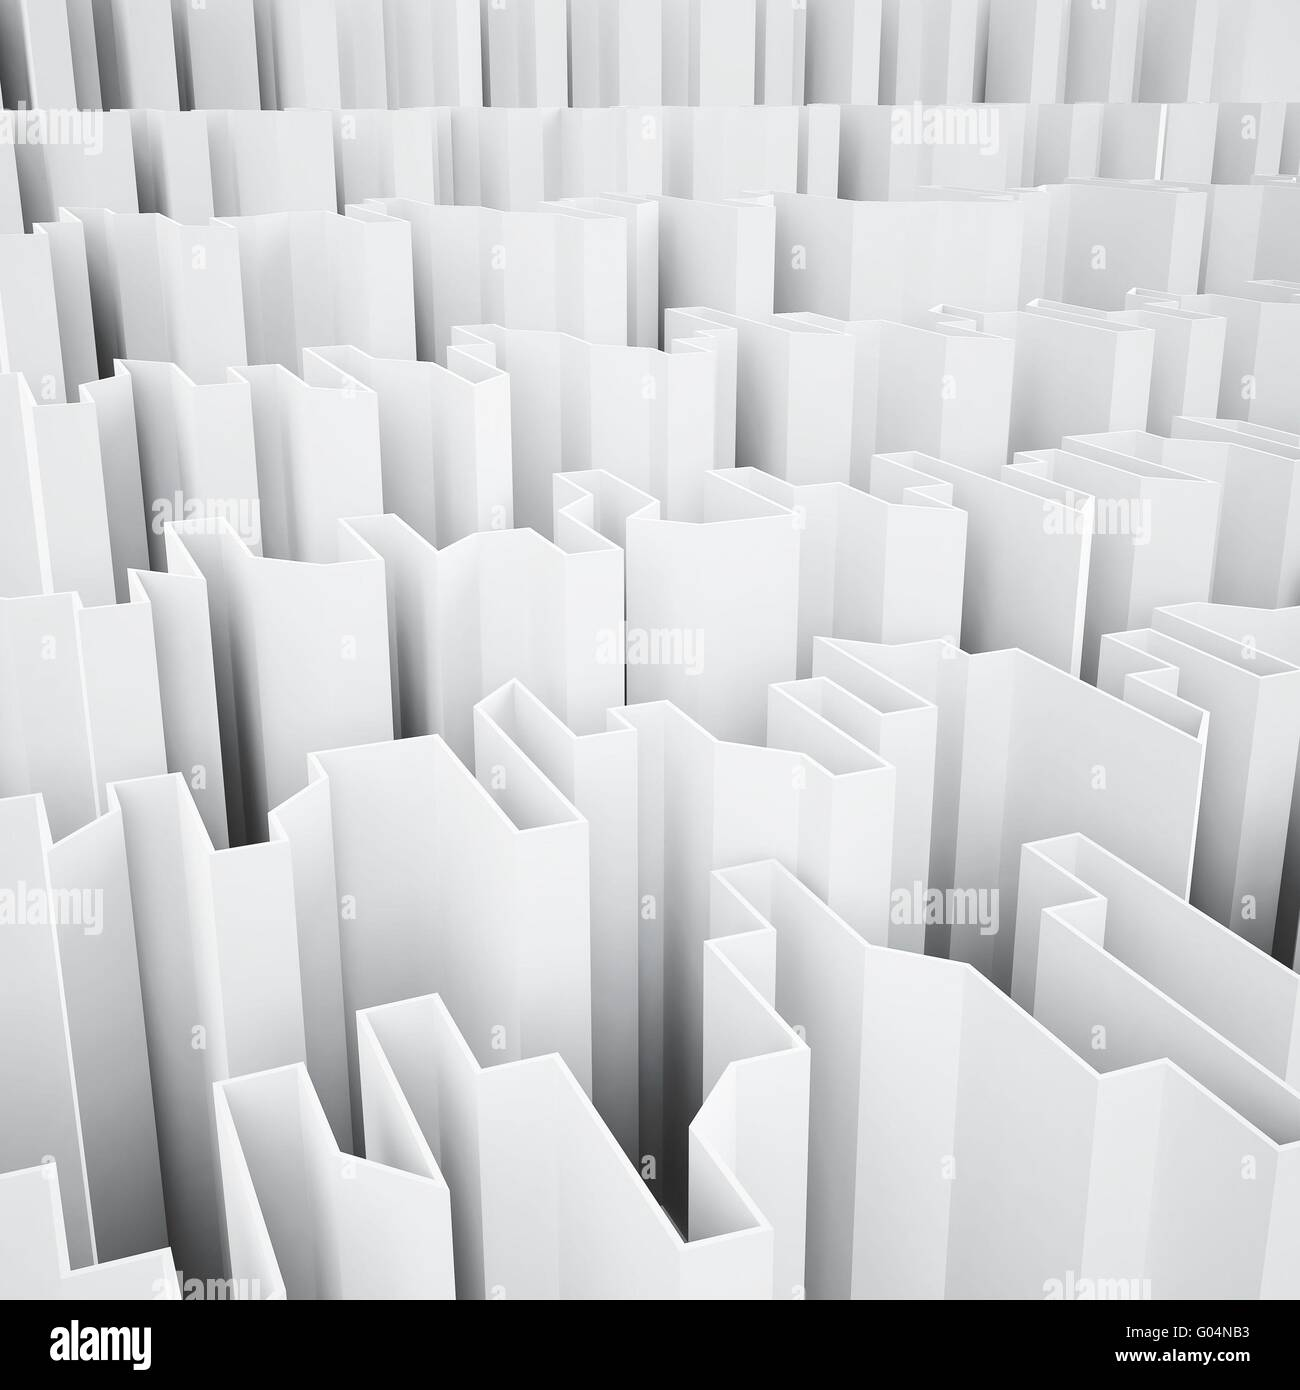 white acute angled abstraction as a background - Stock Image